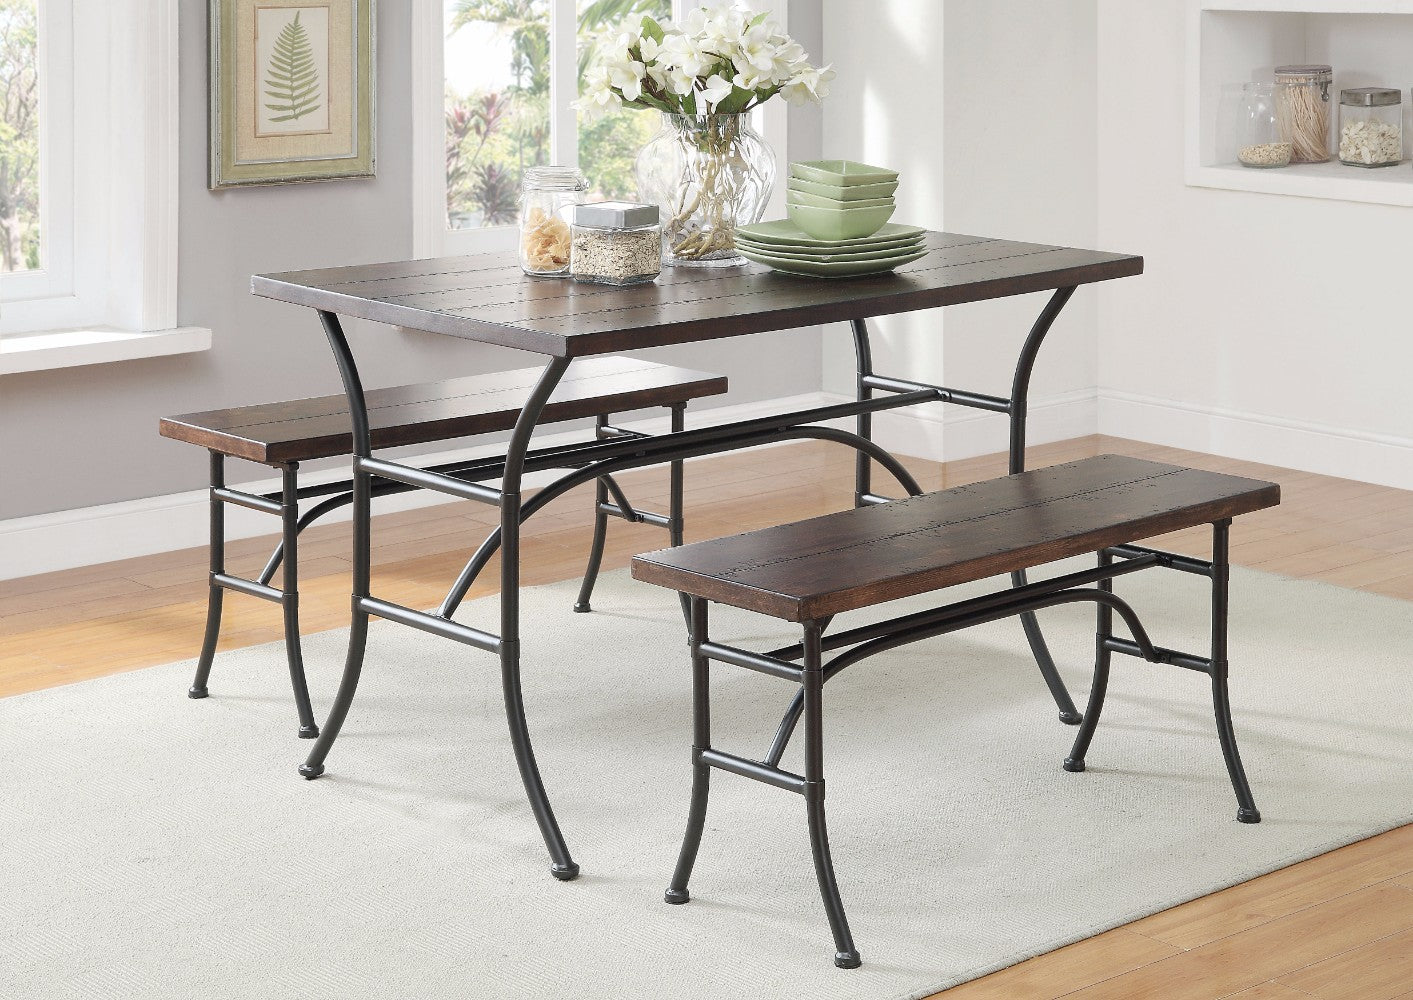 Metal Dining Set, Walnut & Antique Black, 3 Piece Pack